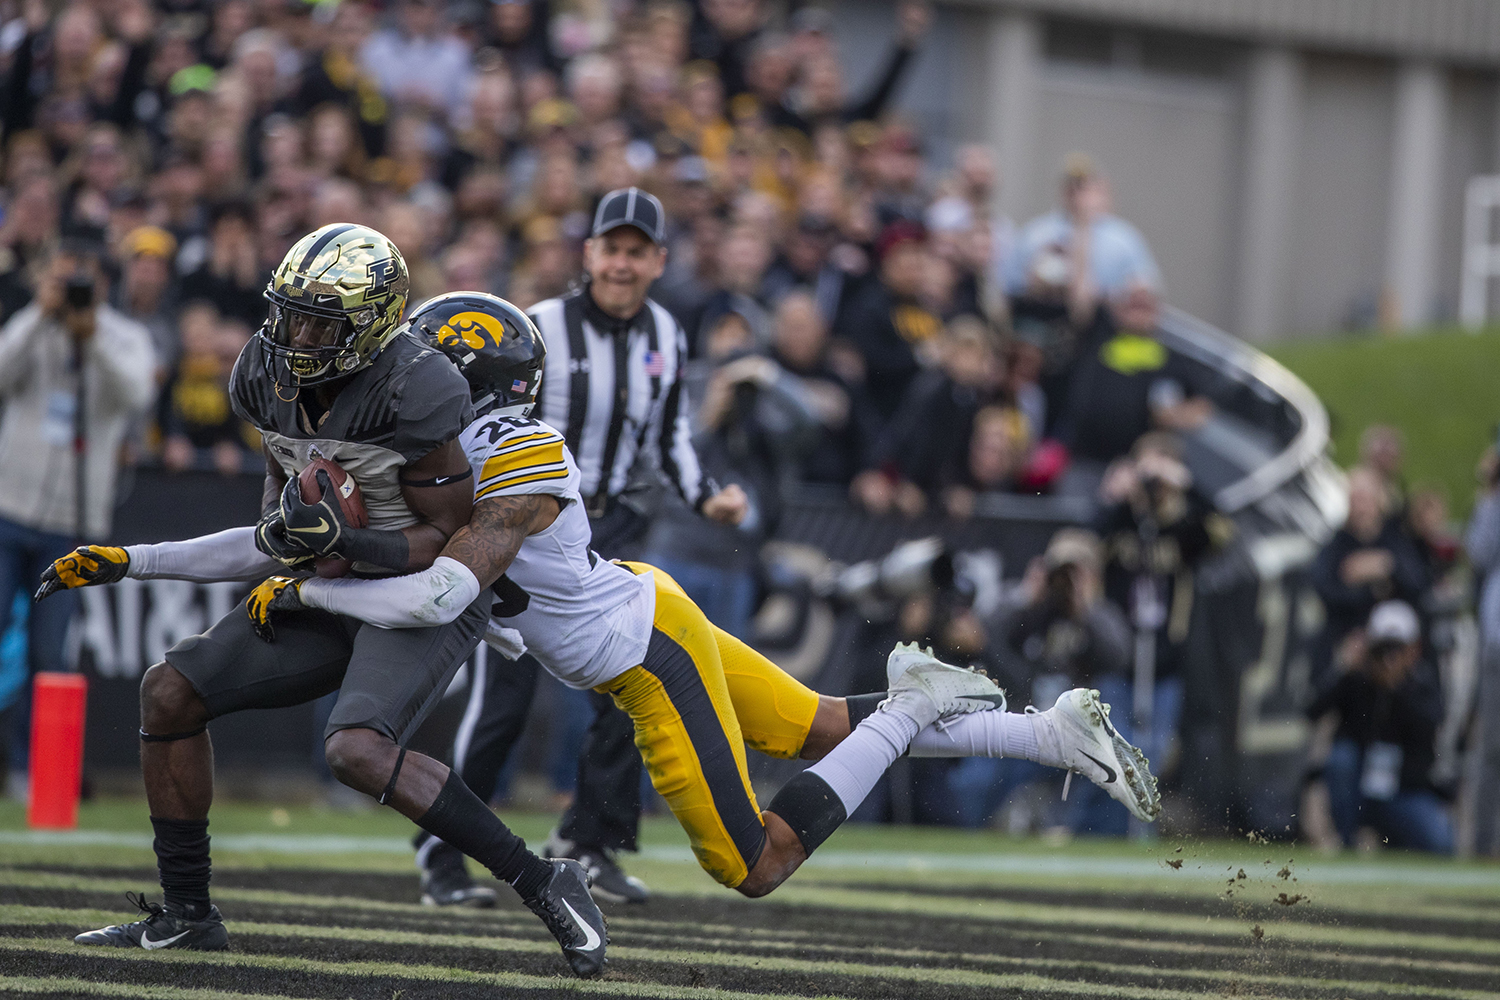 Iowa defensive back Julius Brents tackles Purdue wide receiver Isaac Zico in the end zone during the Iowa/Purdue game at Ross-Ade Stadium in West Lafayette, Ind. The Boilermakers defeated the Hawkeyes, 38-36, with a last second field goal.